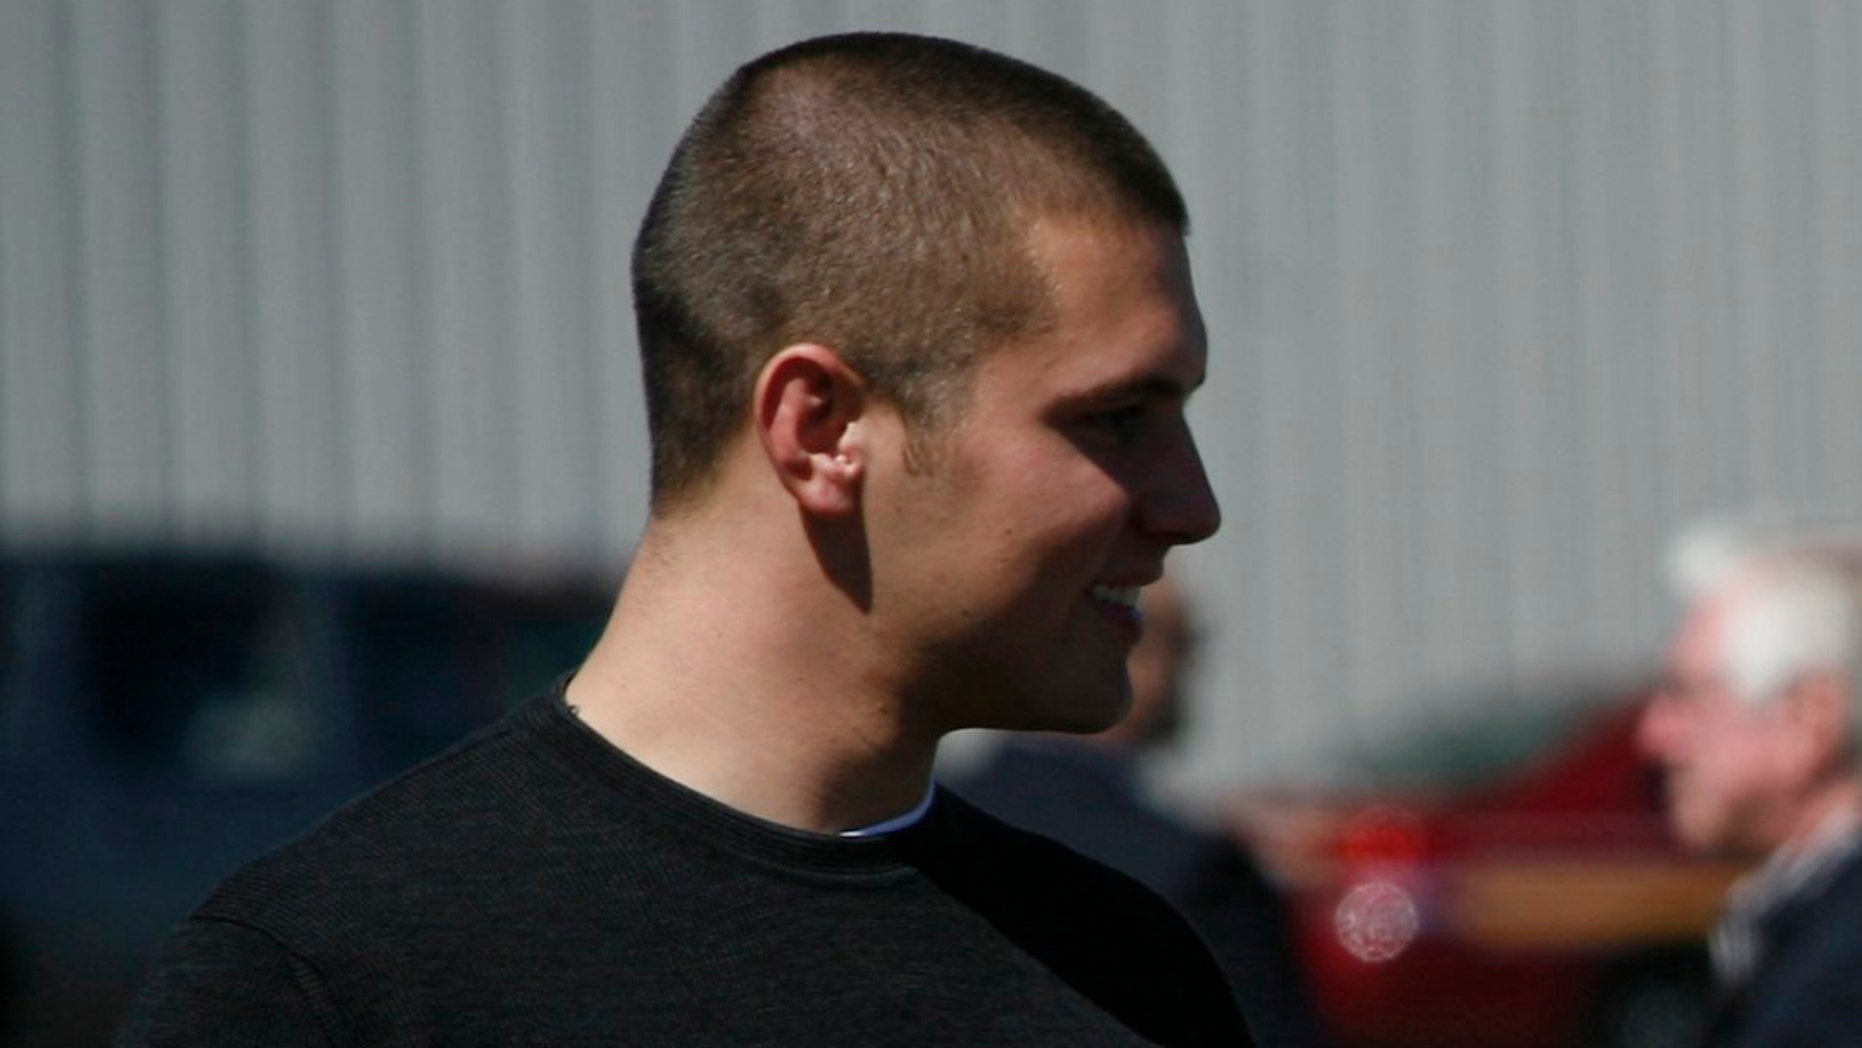 Track Palin, former Alaska Gov. Sarah Palin's oldest son, was arraigned Sunday after being arrested a day earlier on charges of domestic violence.